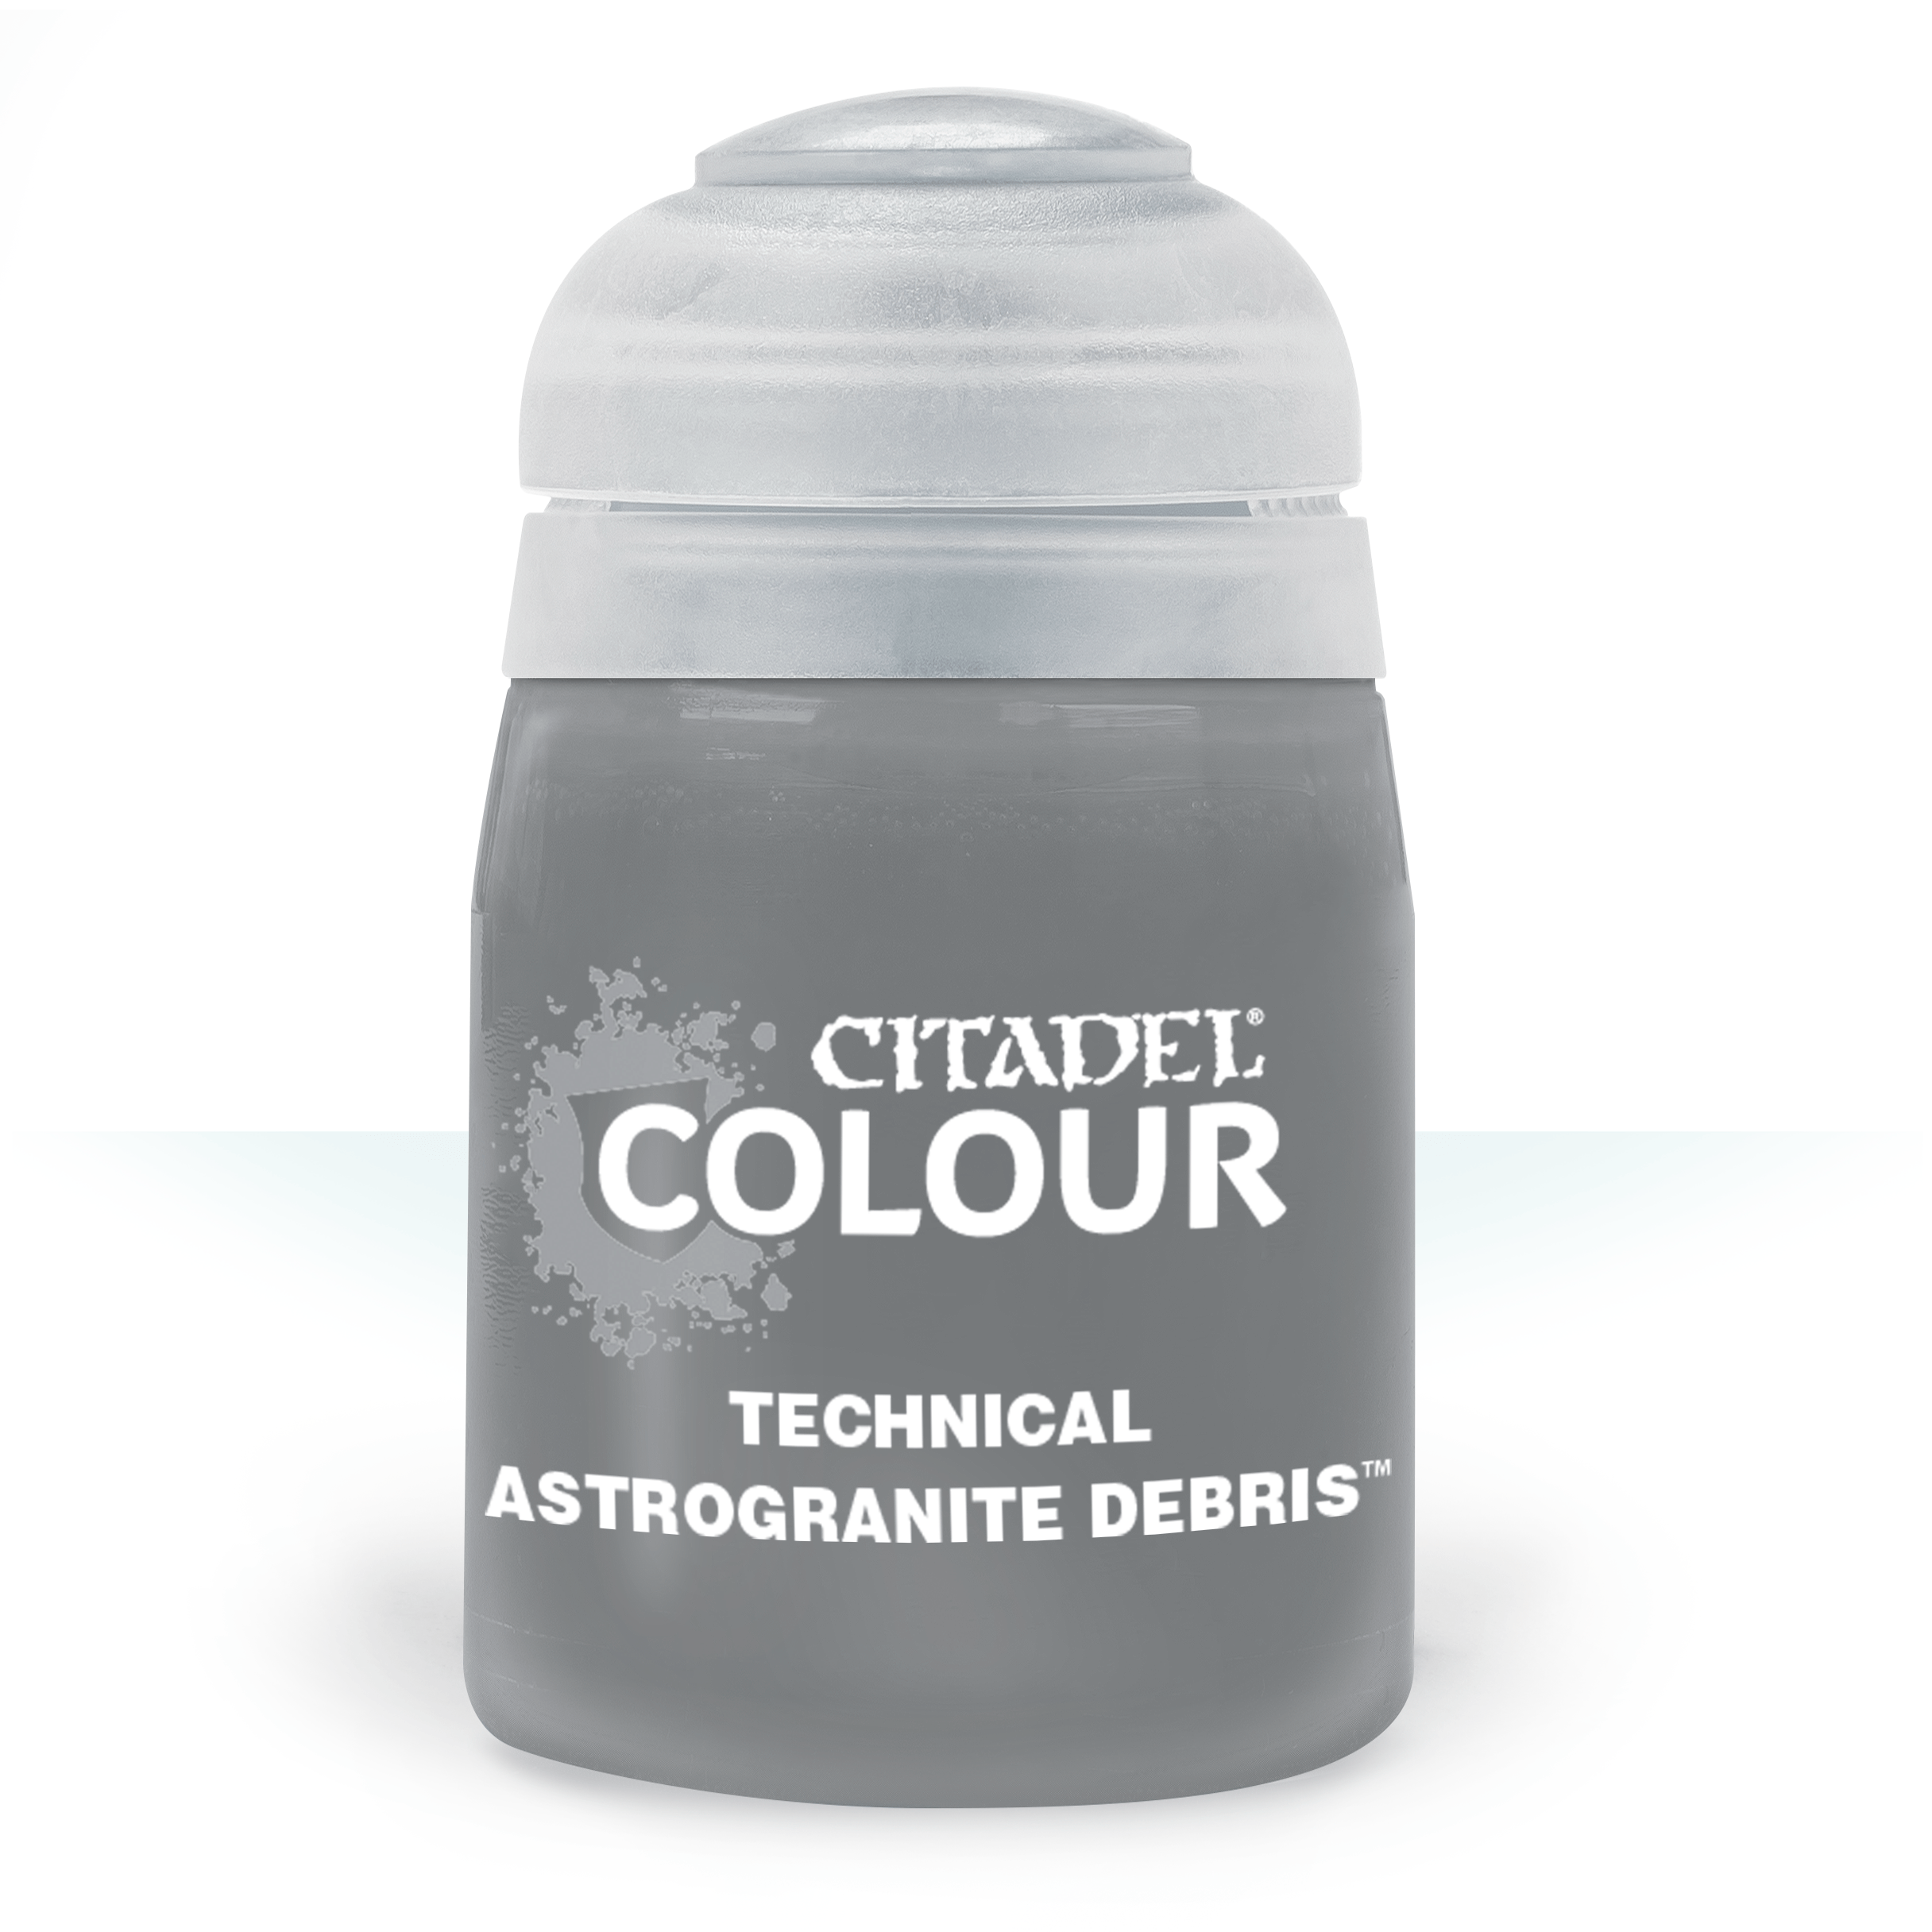 Astrogranite Debris, Citadel Technical 24ml